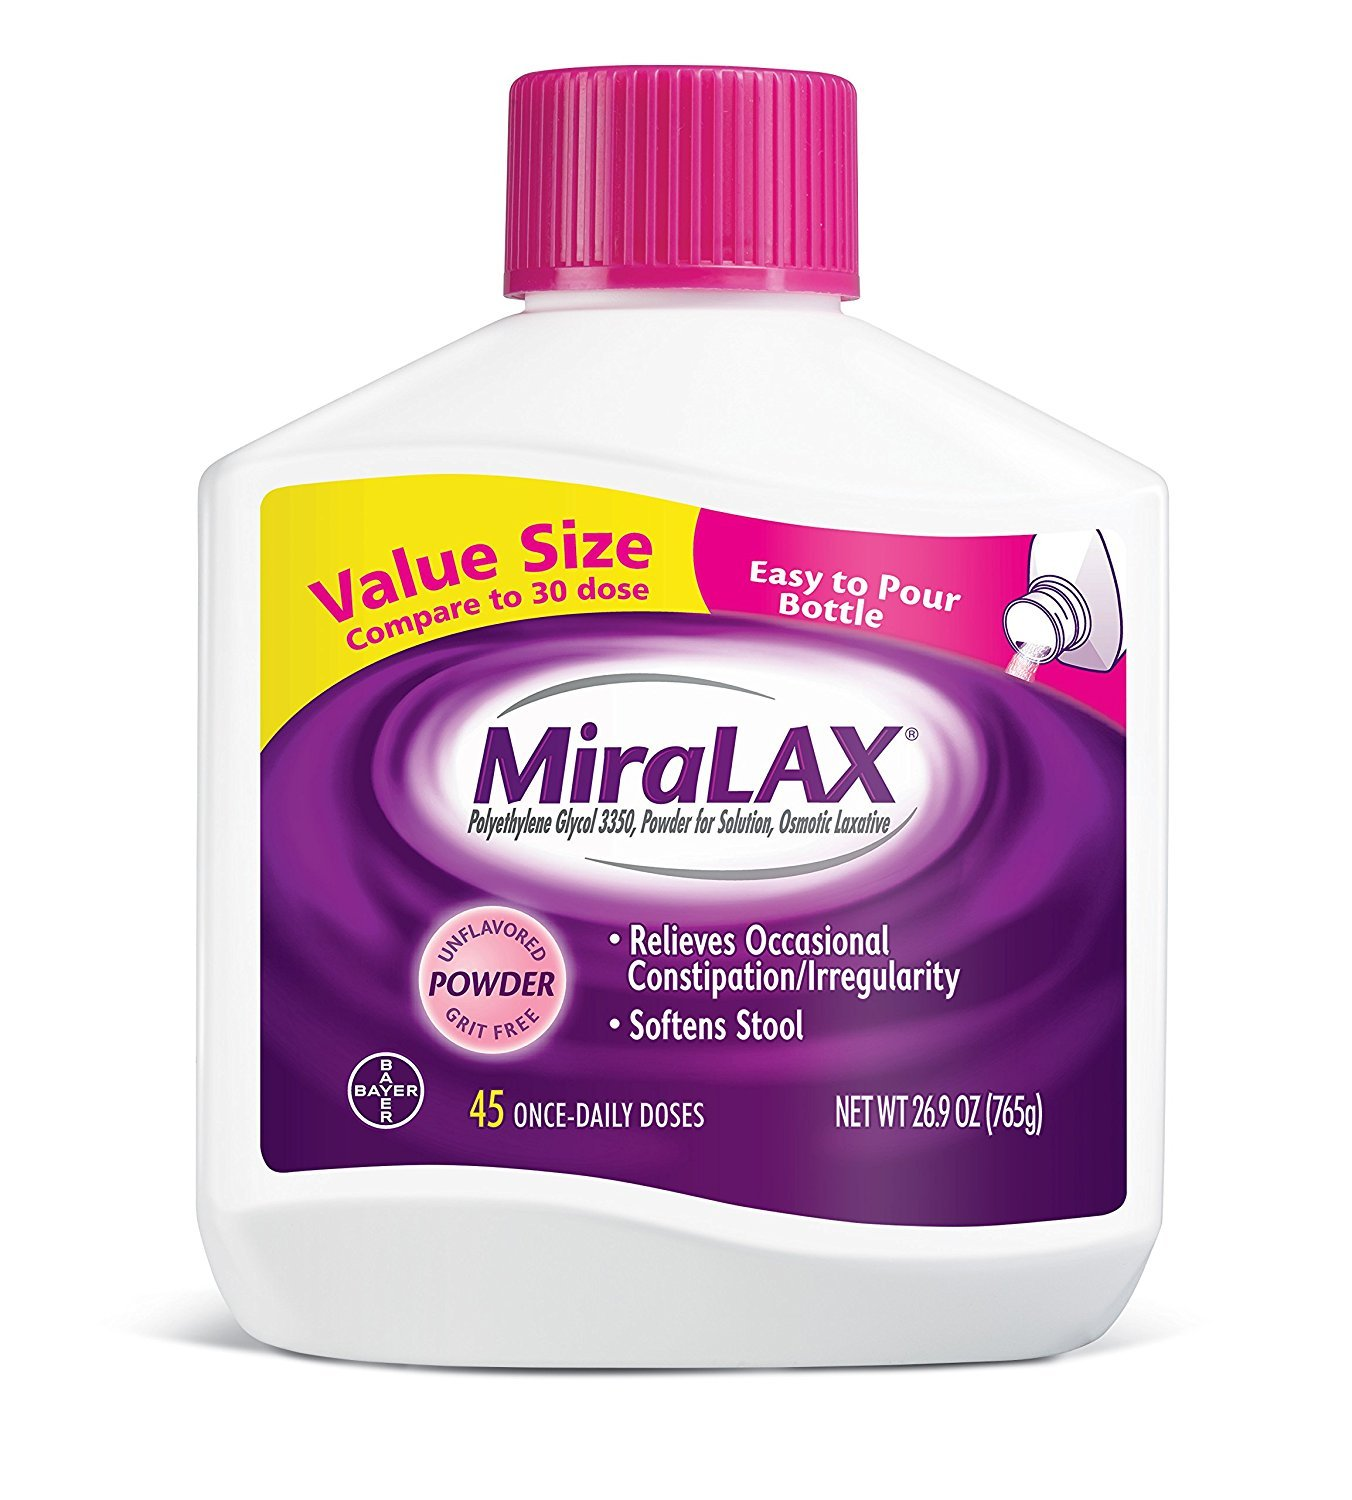 MiraLAX Powder Laxative, 45 Doses, 26.9 Ounce (3 Pack (45 Dose))